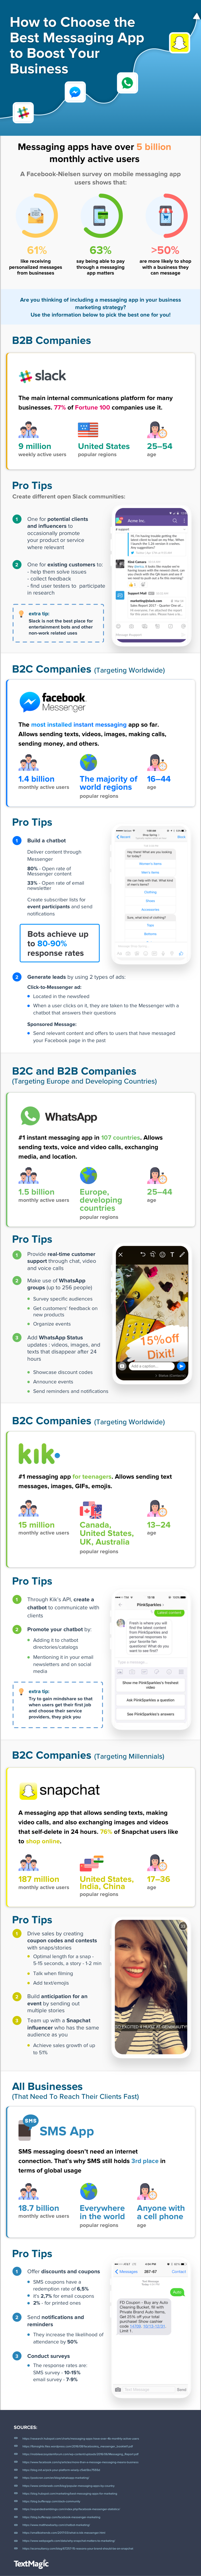 Infographic Best Messaging App to Boost Your Business